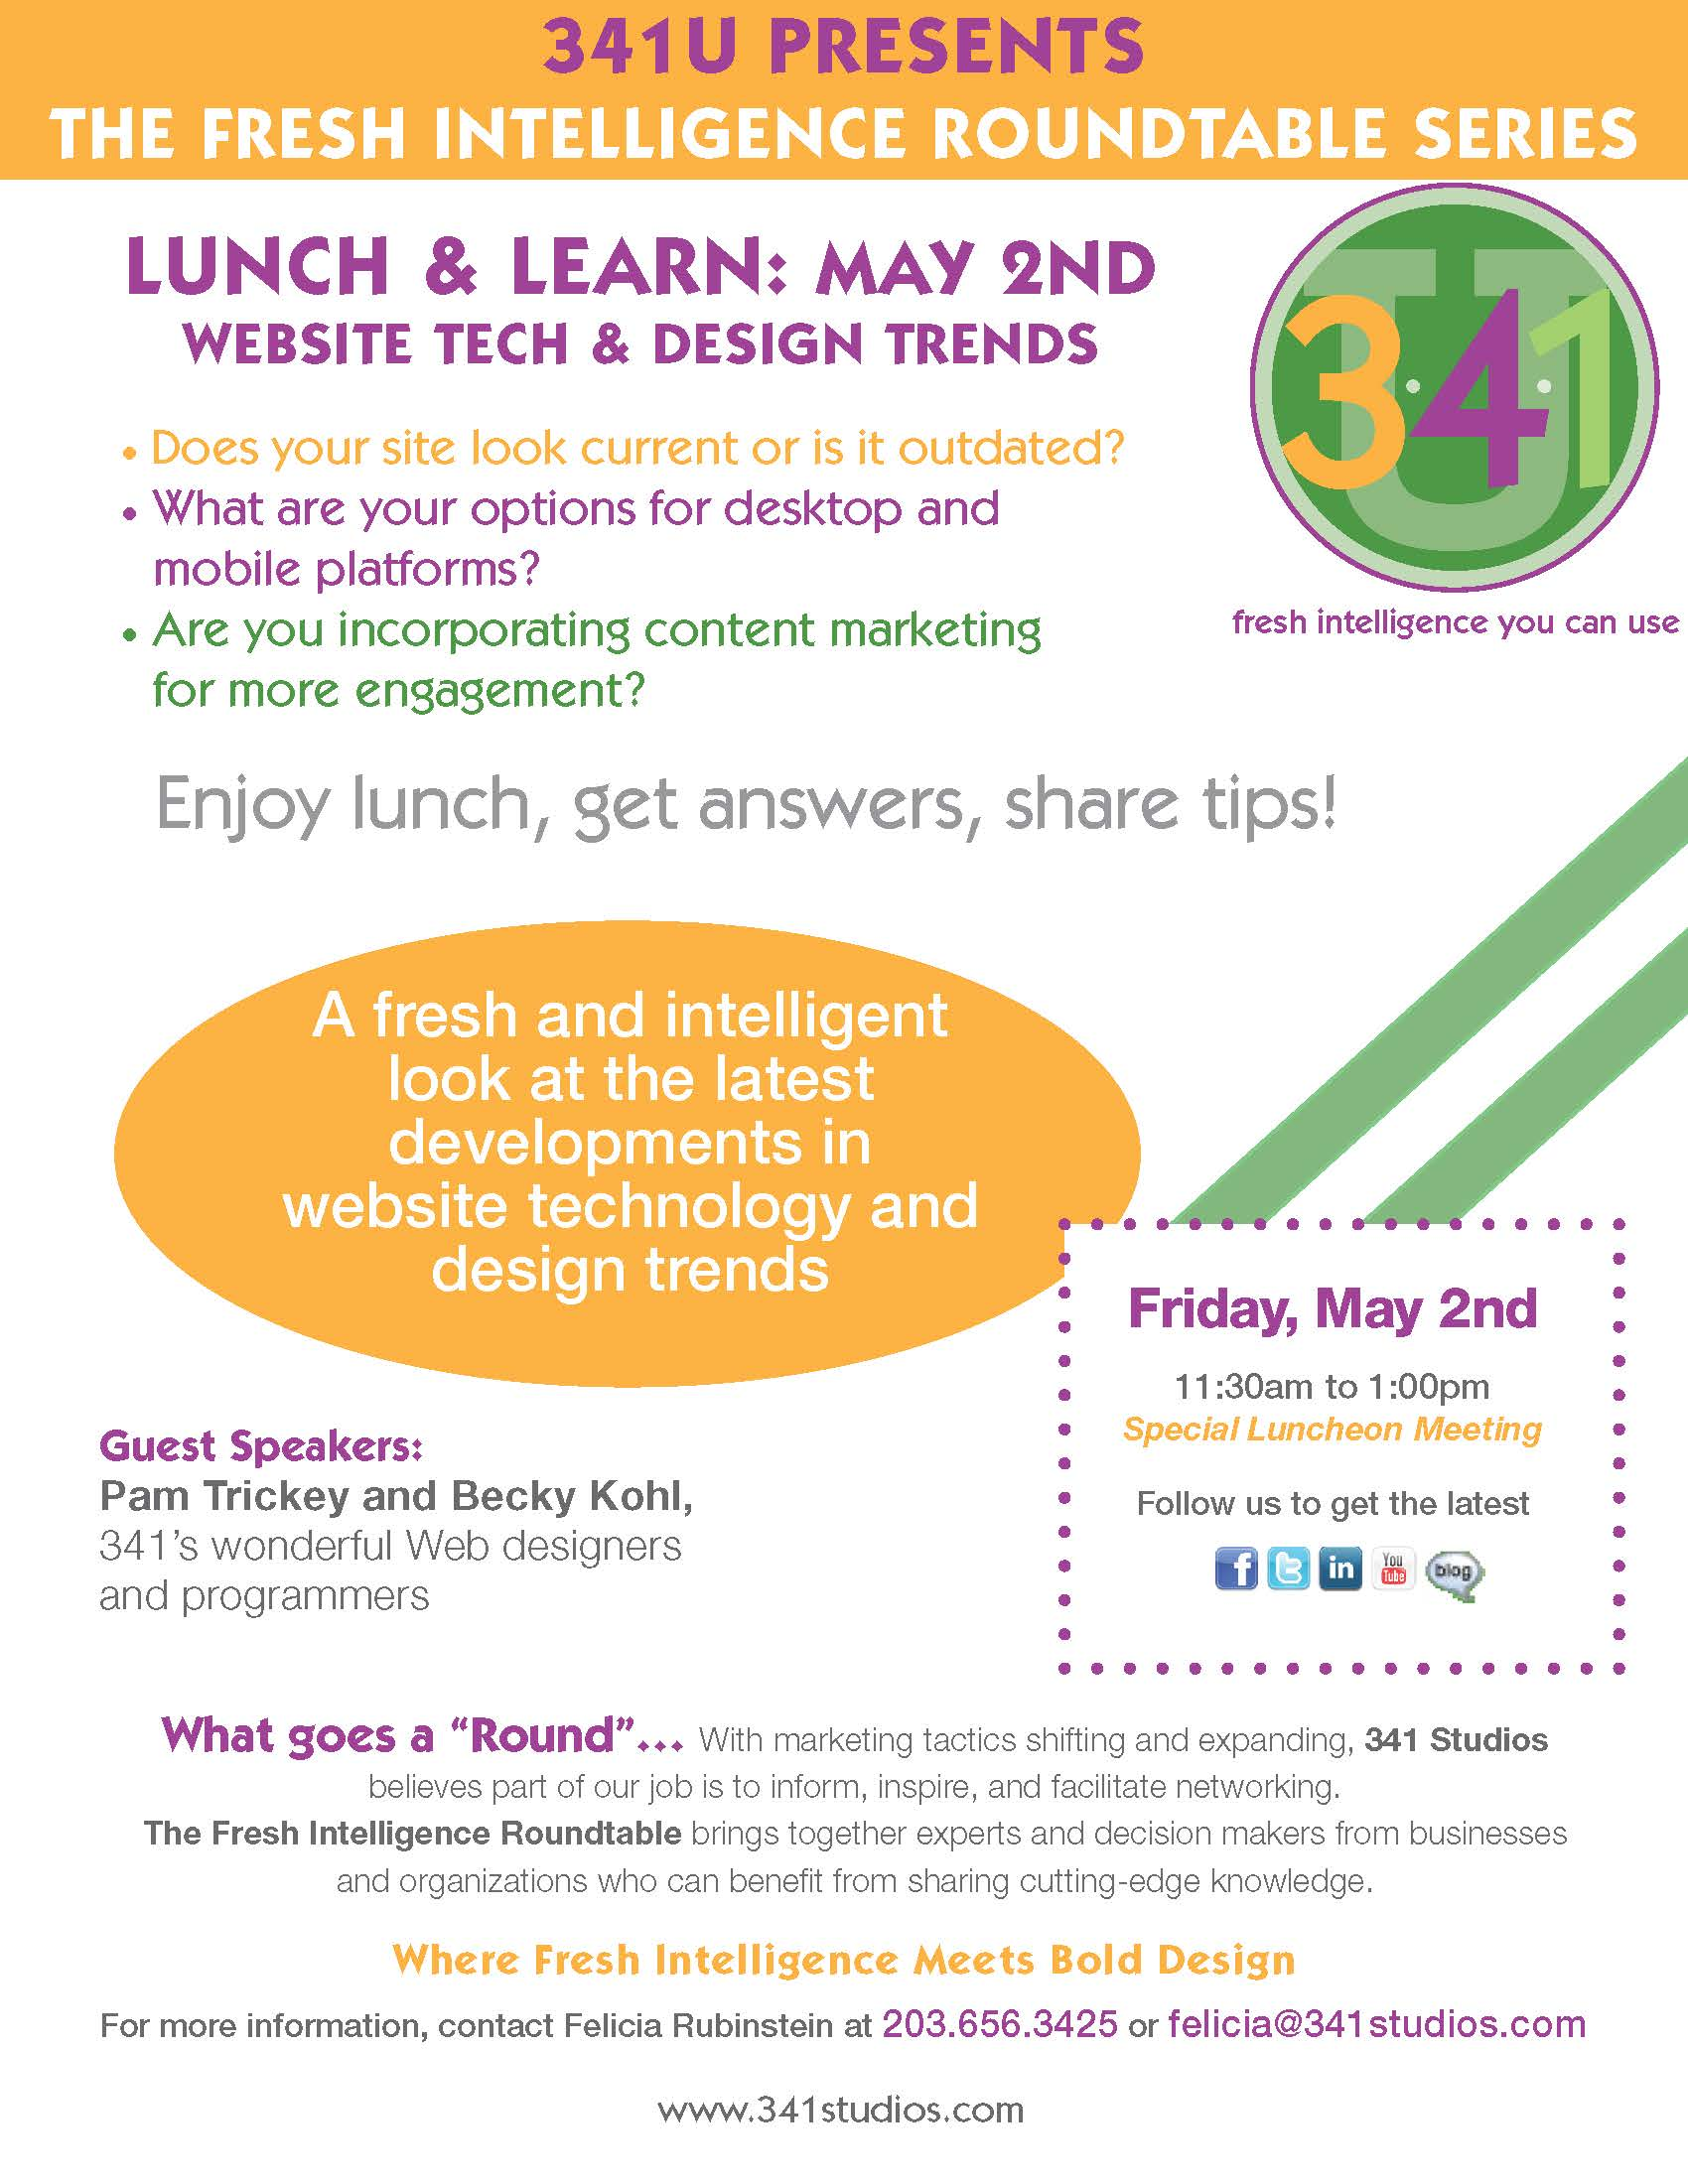 May 2nd Lunch & Learn - Website Tech & Design Trends